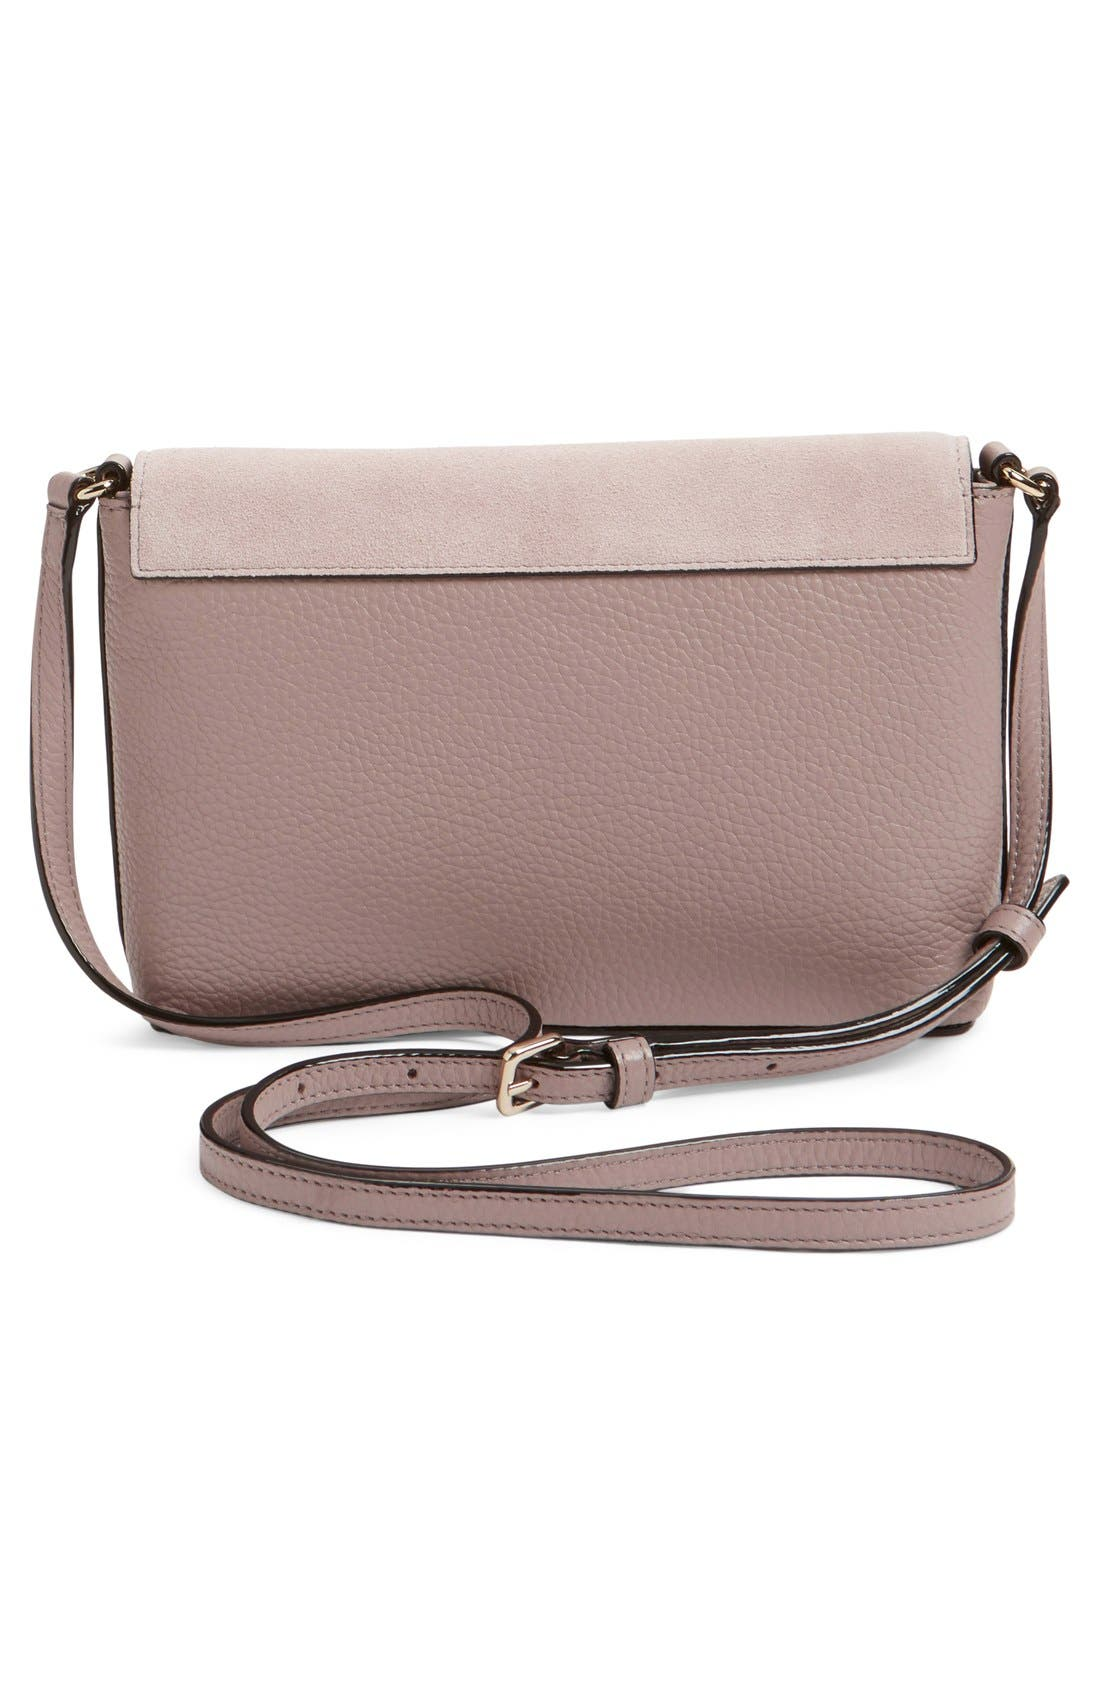 Alternate Image 3  - kate spade new york 'spencer court - large monday' suede & leather envelope crossbody bag (Nordstrom Exclusive)